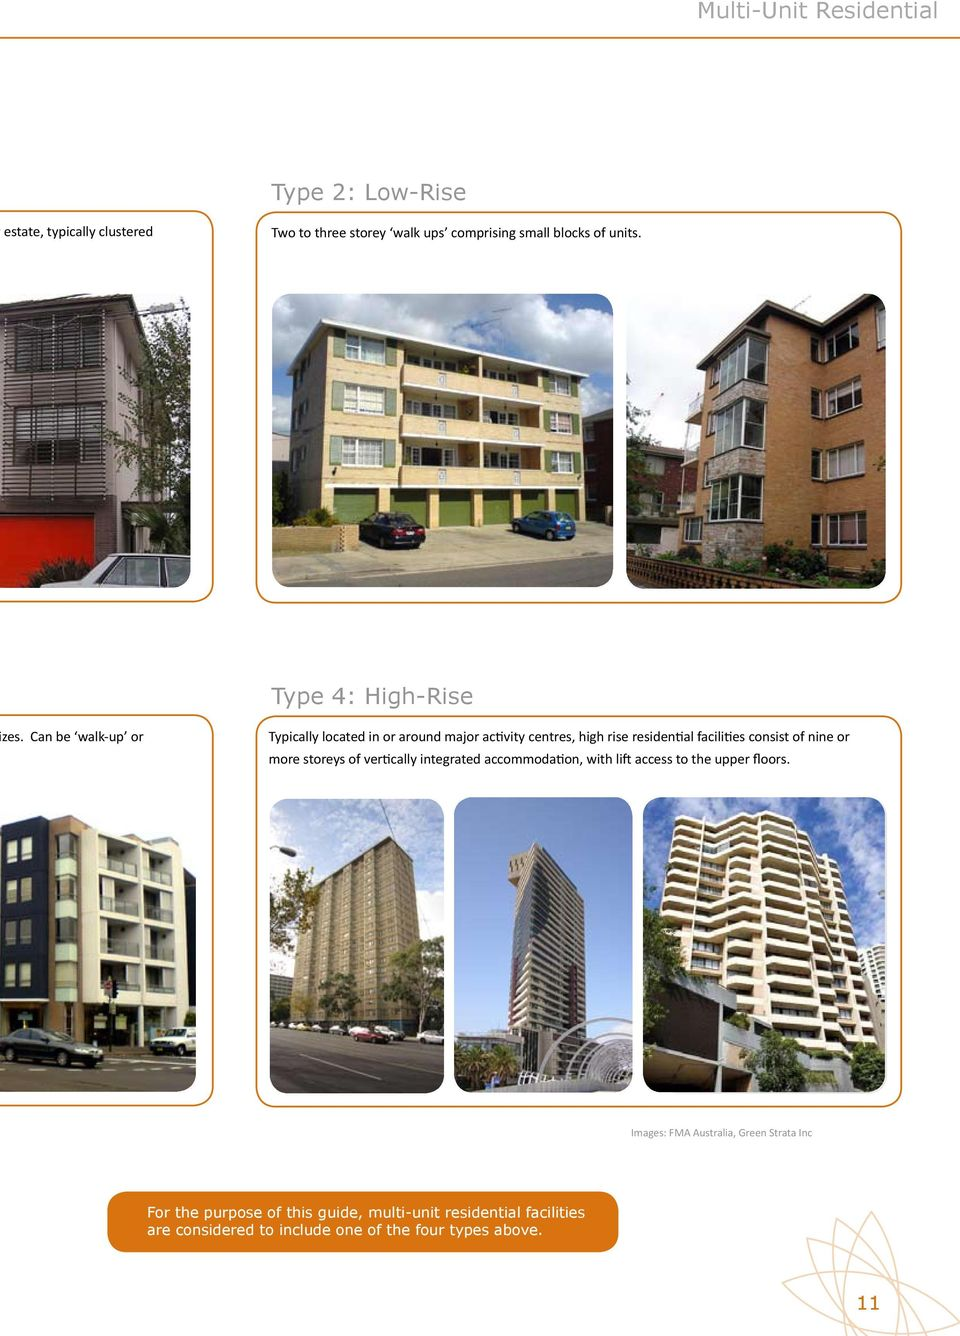 Can be walk-up or Typically located in or around major activity centres, high rise residential facilities consist of nine or more